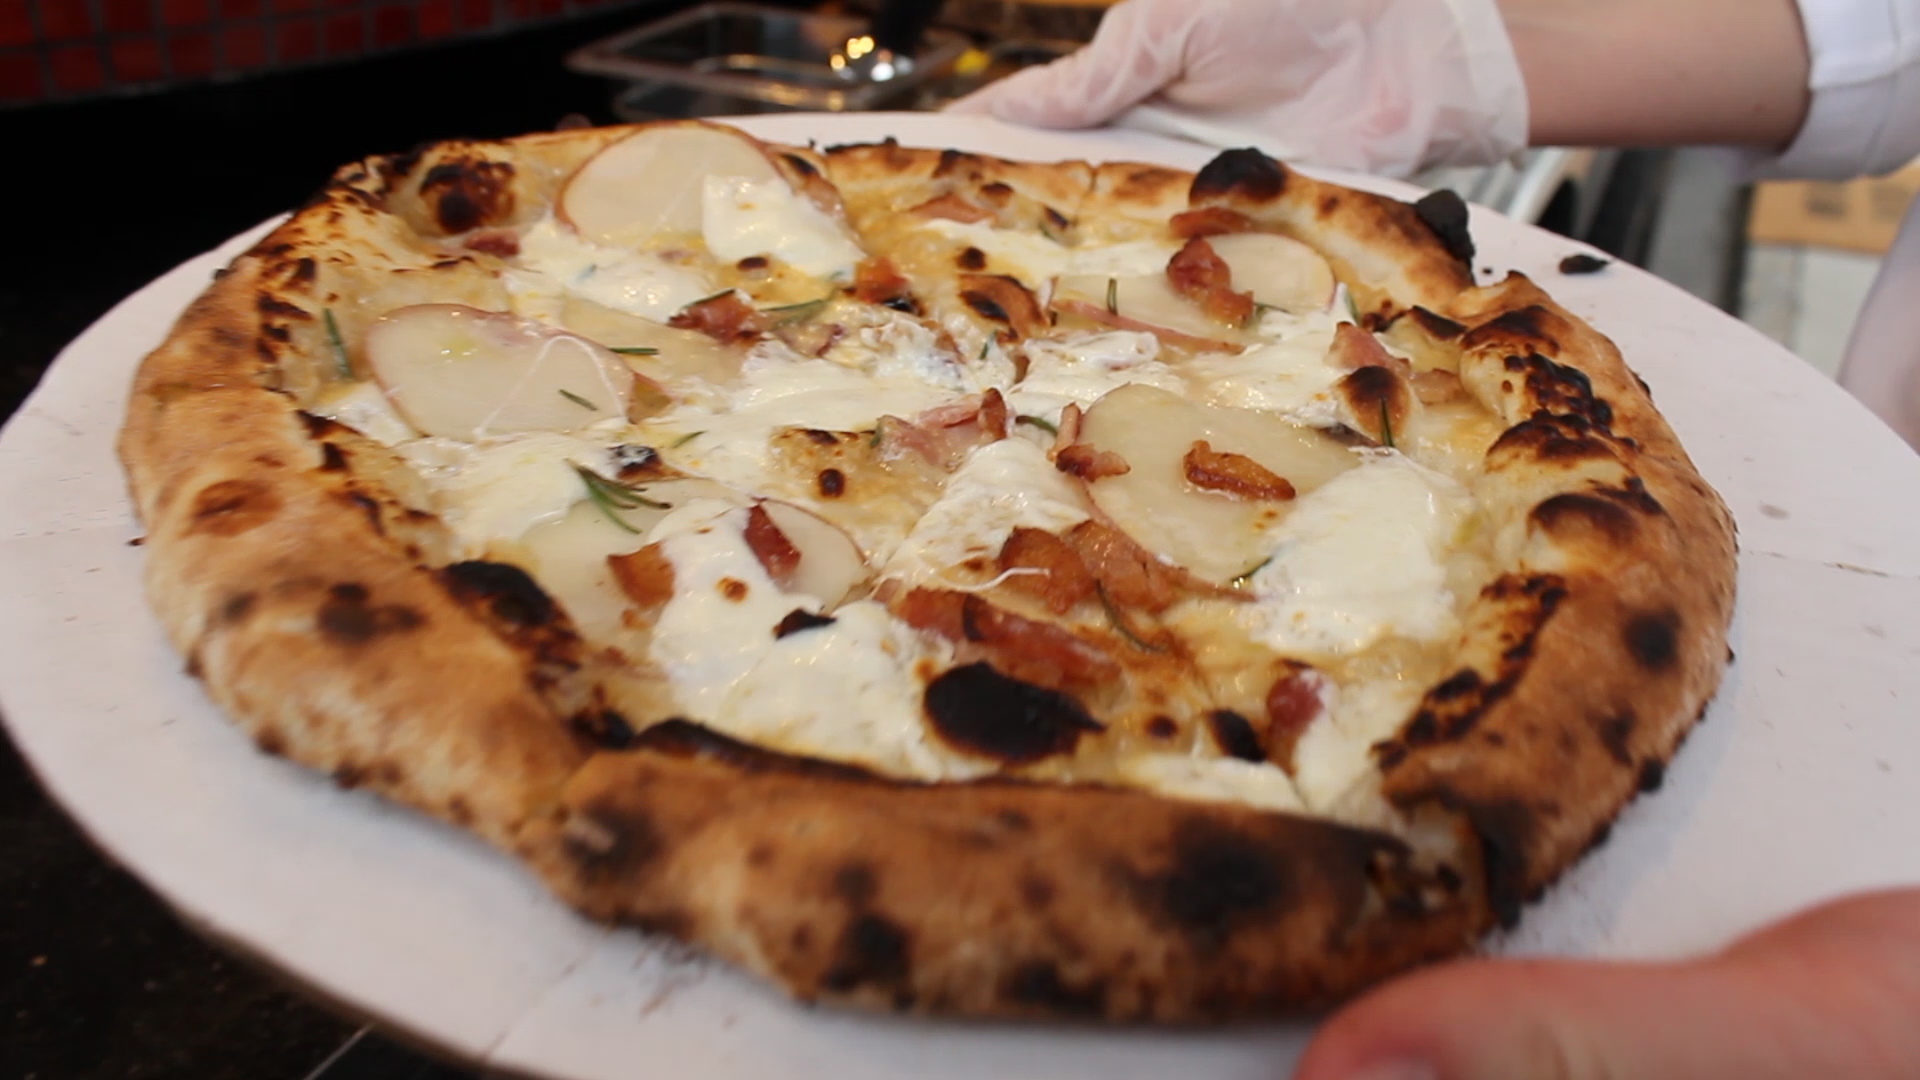 Luna Bon is topped with Roasted Rosemary Potato, Bacon, Whipped Ricotta and Truffle Oil.